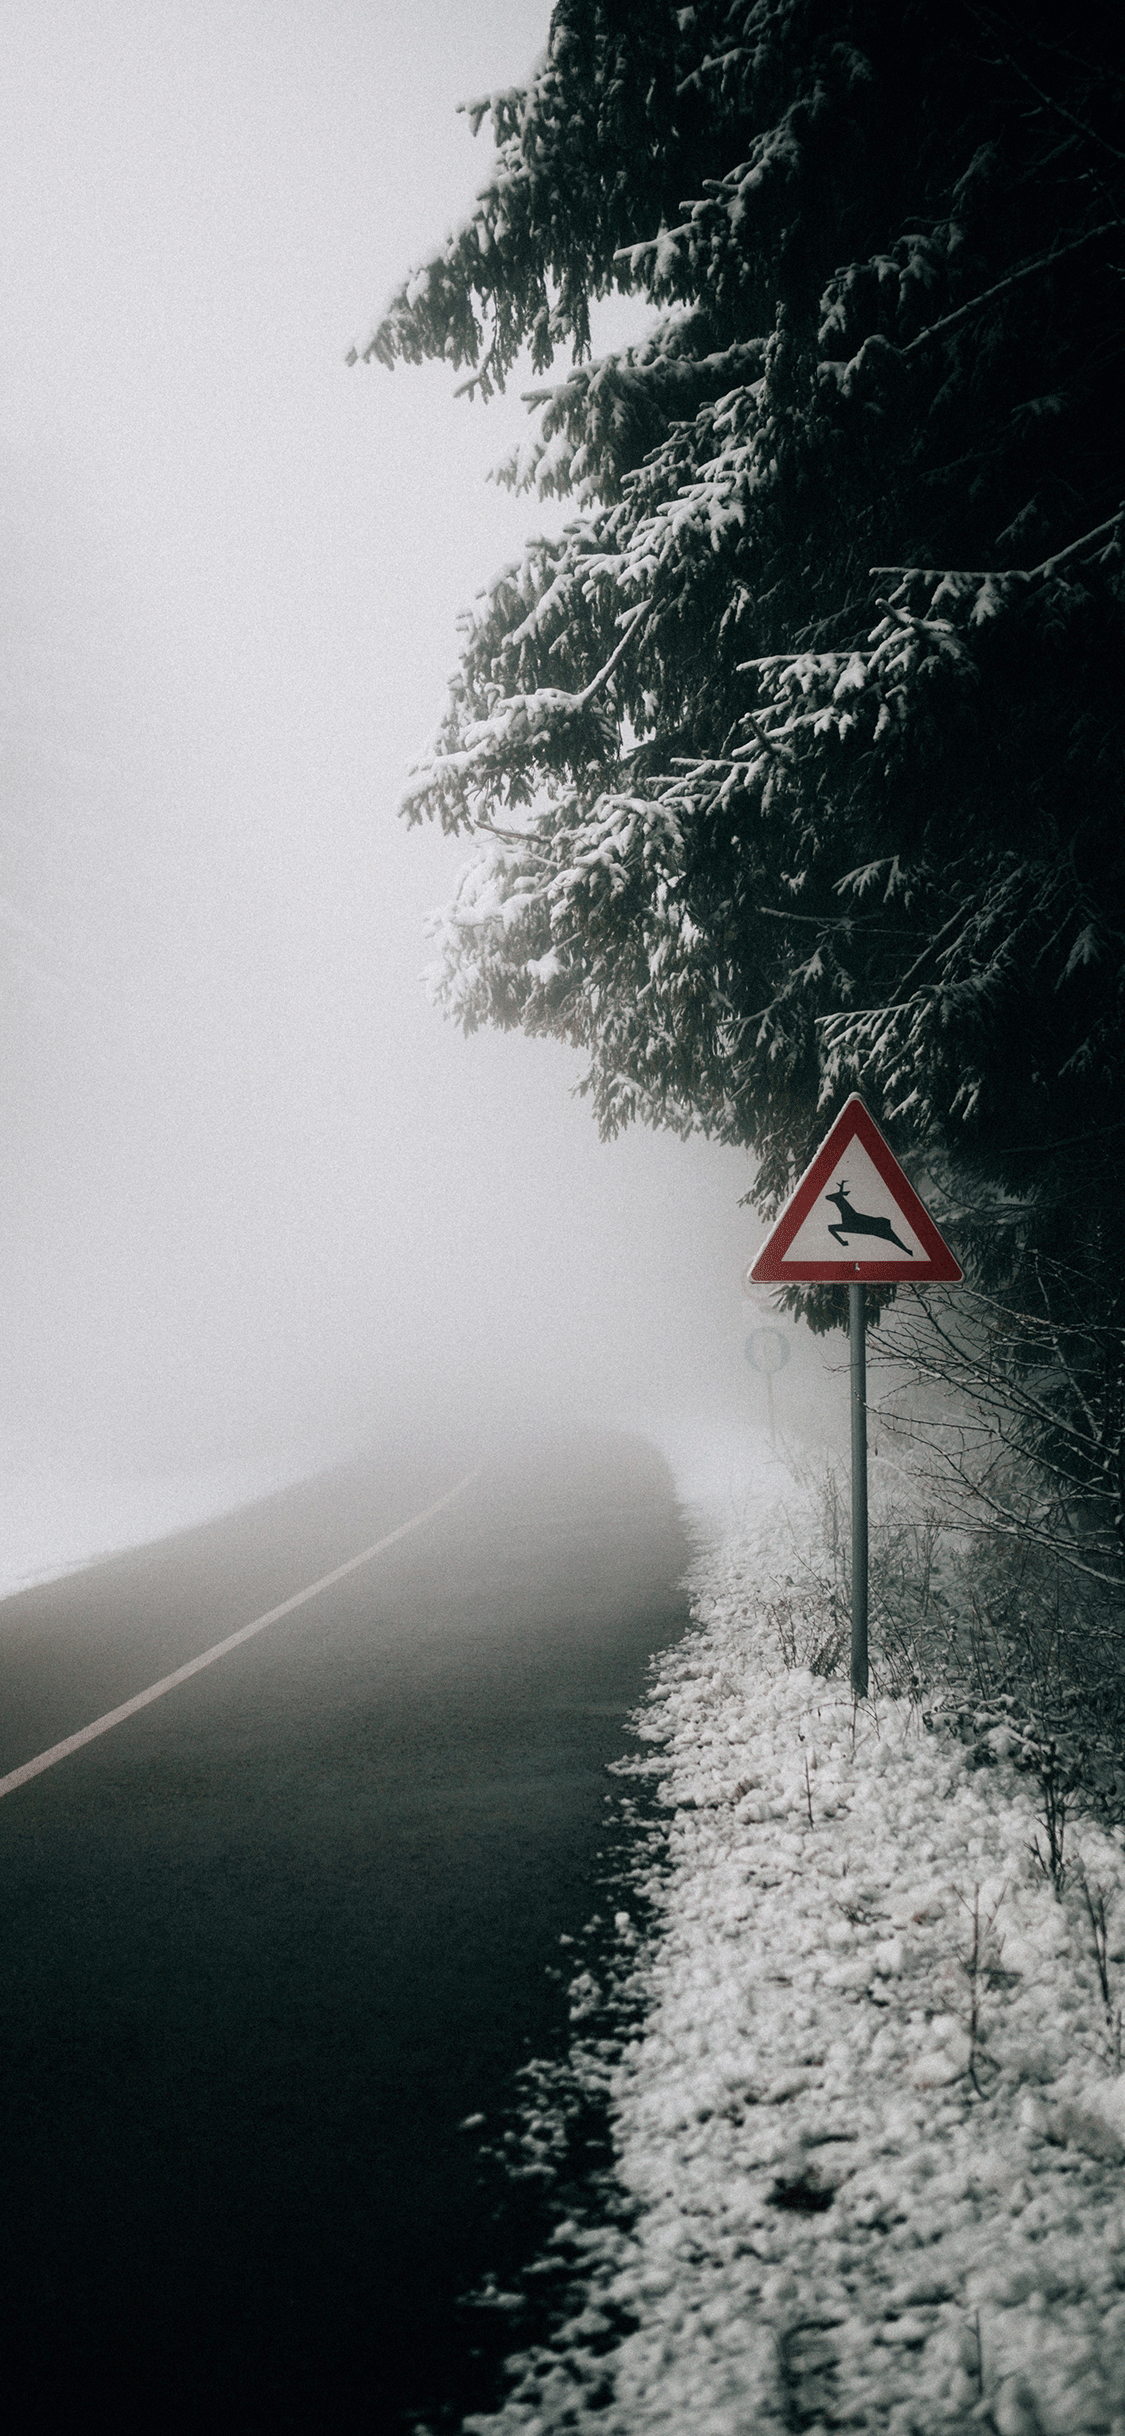 iPhone wallpaper fog road serbia Fonds d'écran iPhone du 16/08/2018